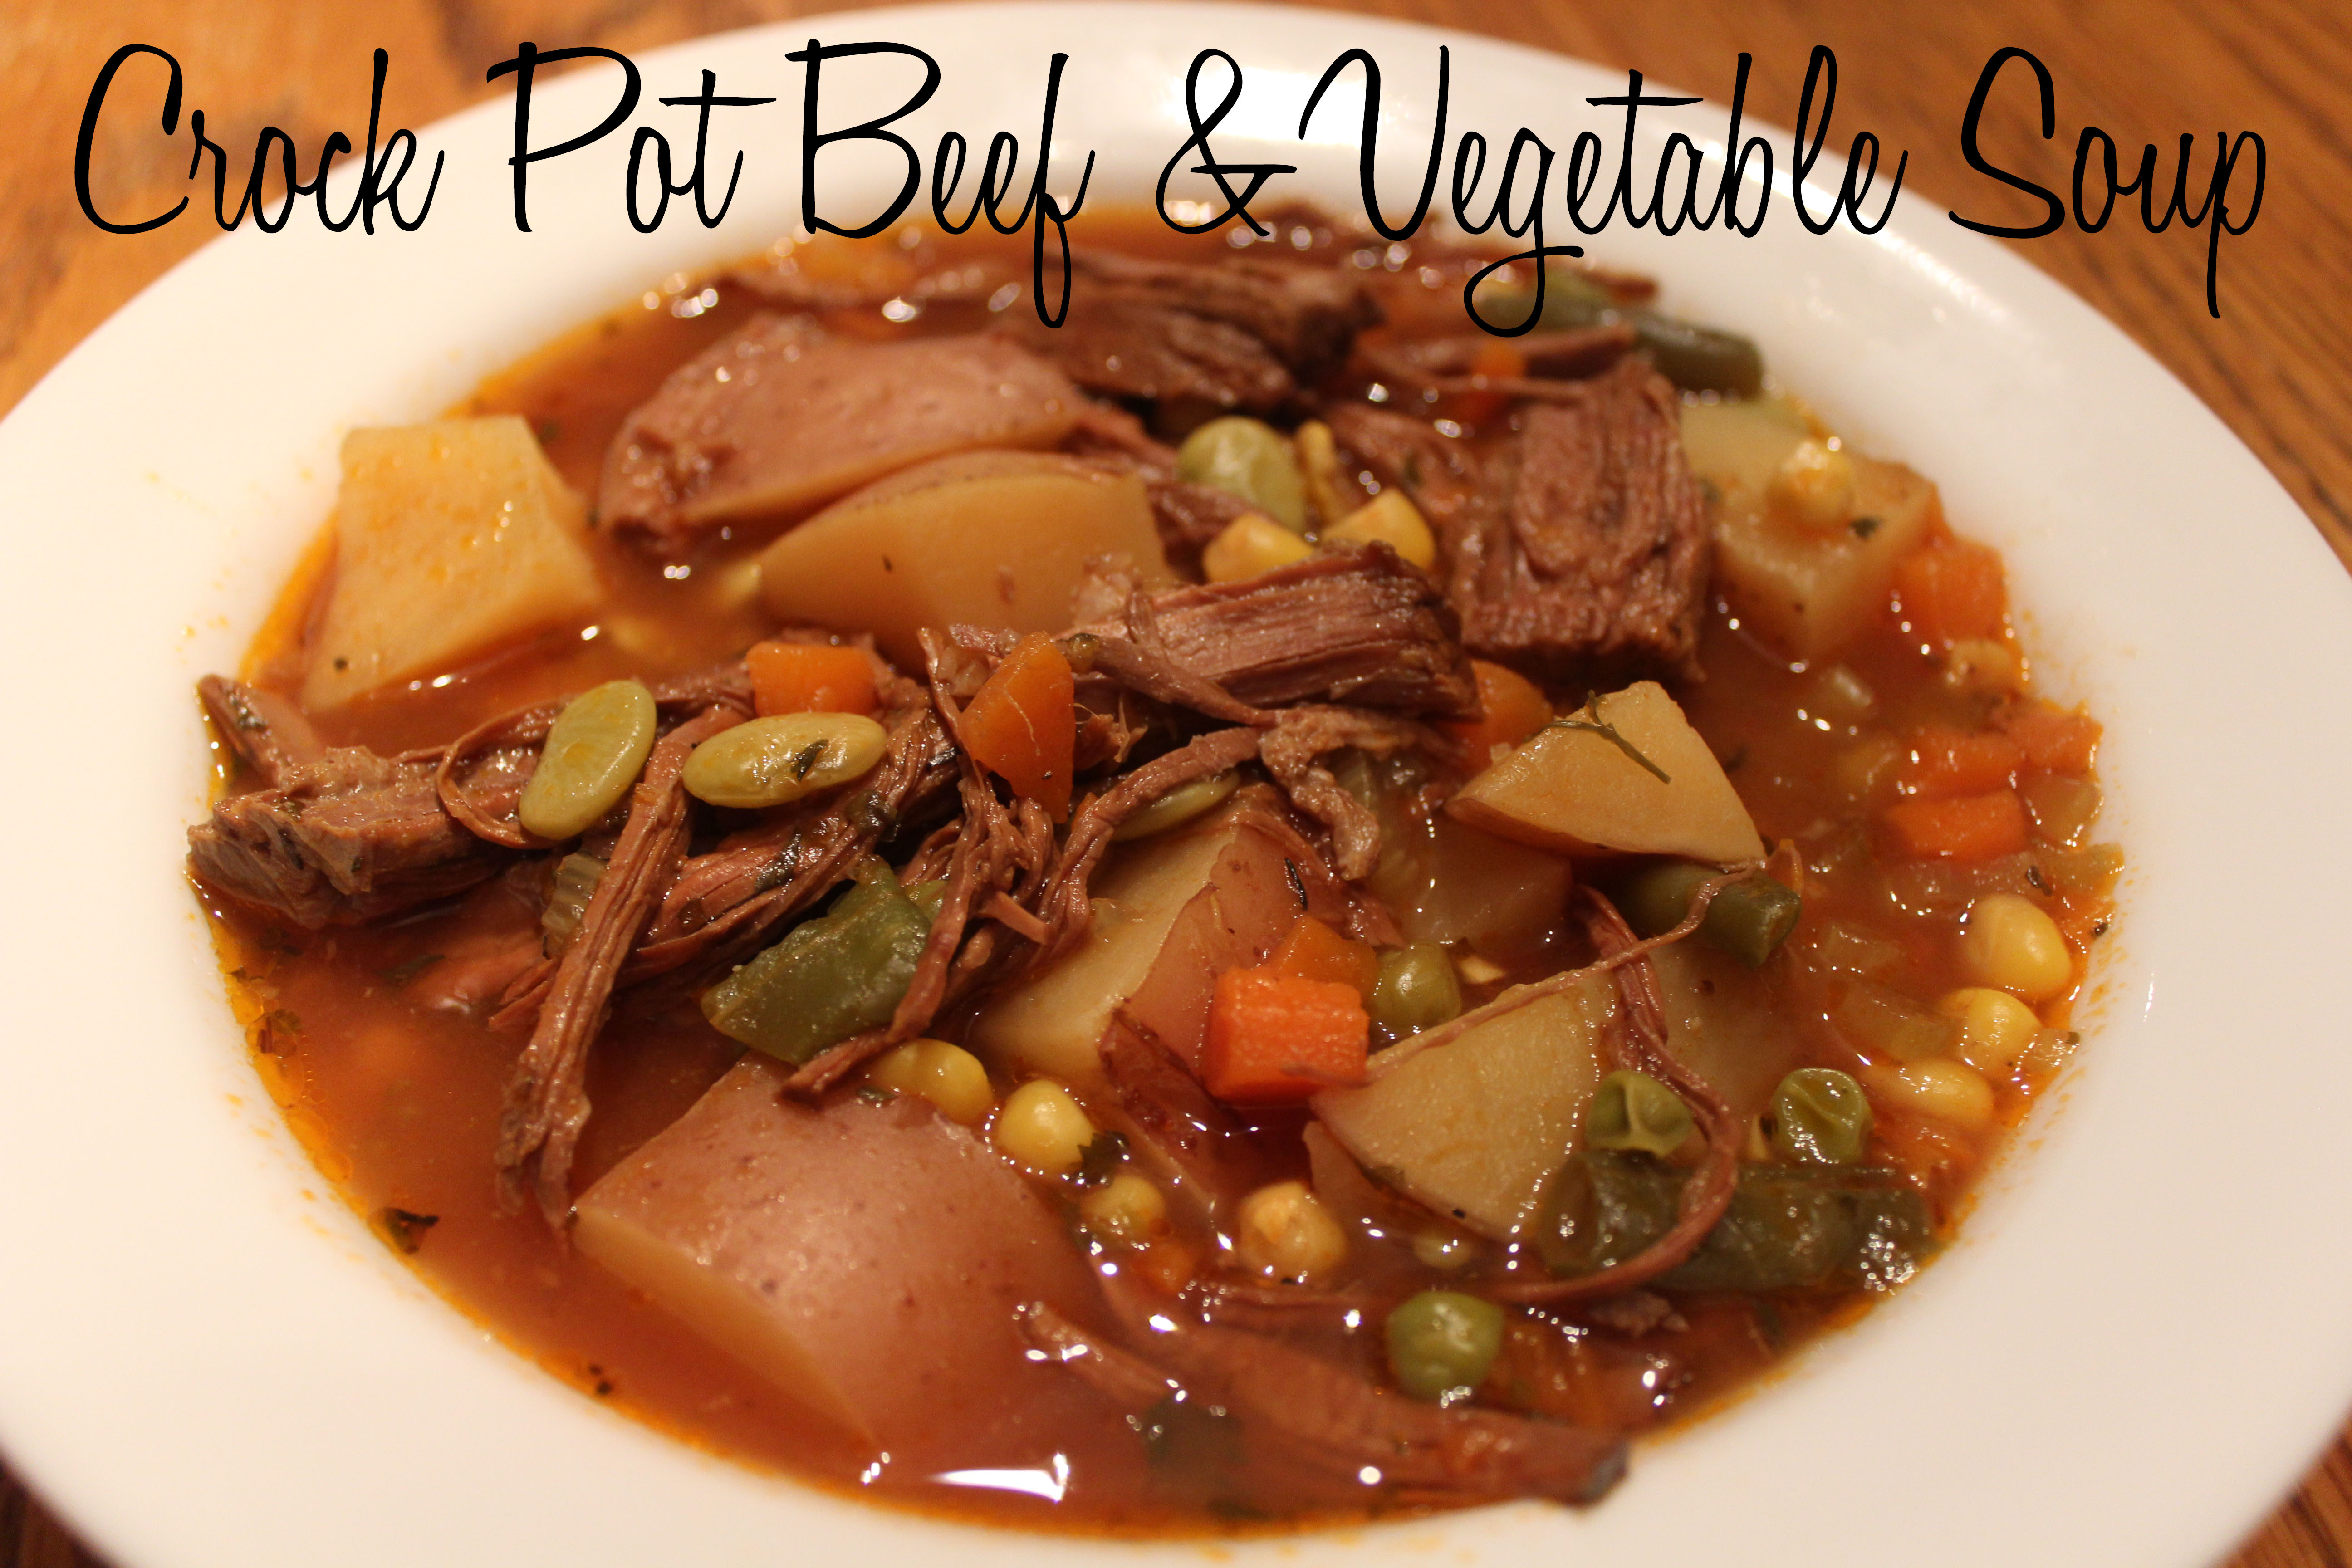 Crock Pot Beef Amp Vegetable Soup The Project Board